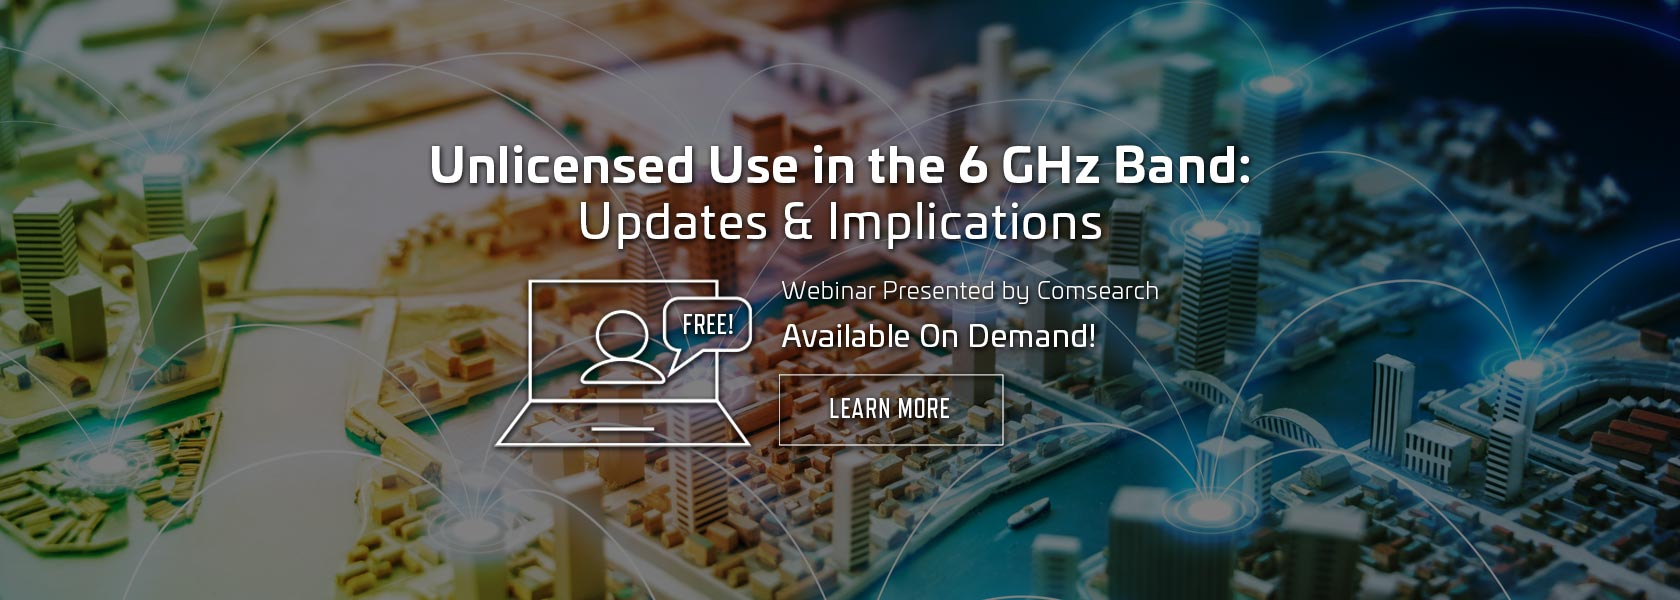 Unlicensed Use in the 6 GHz Band: Updates & Implications